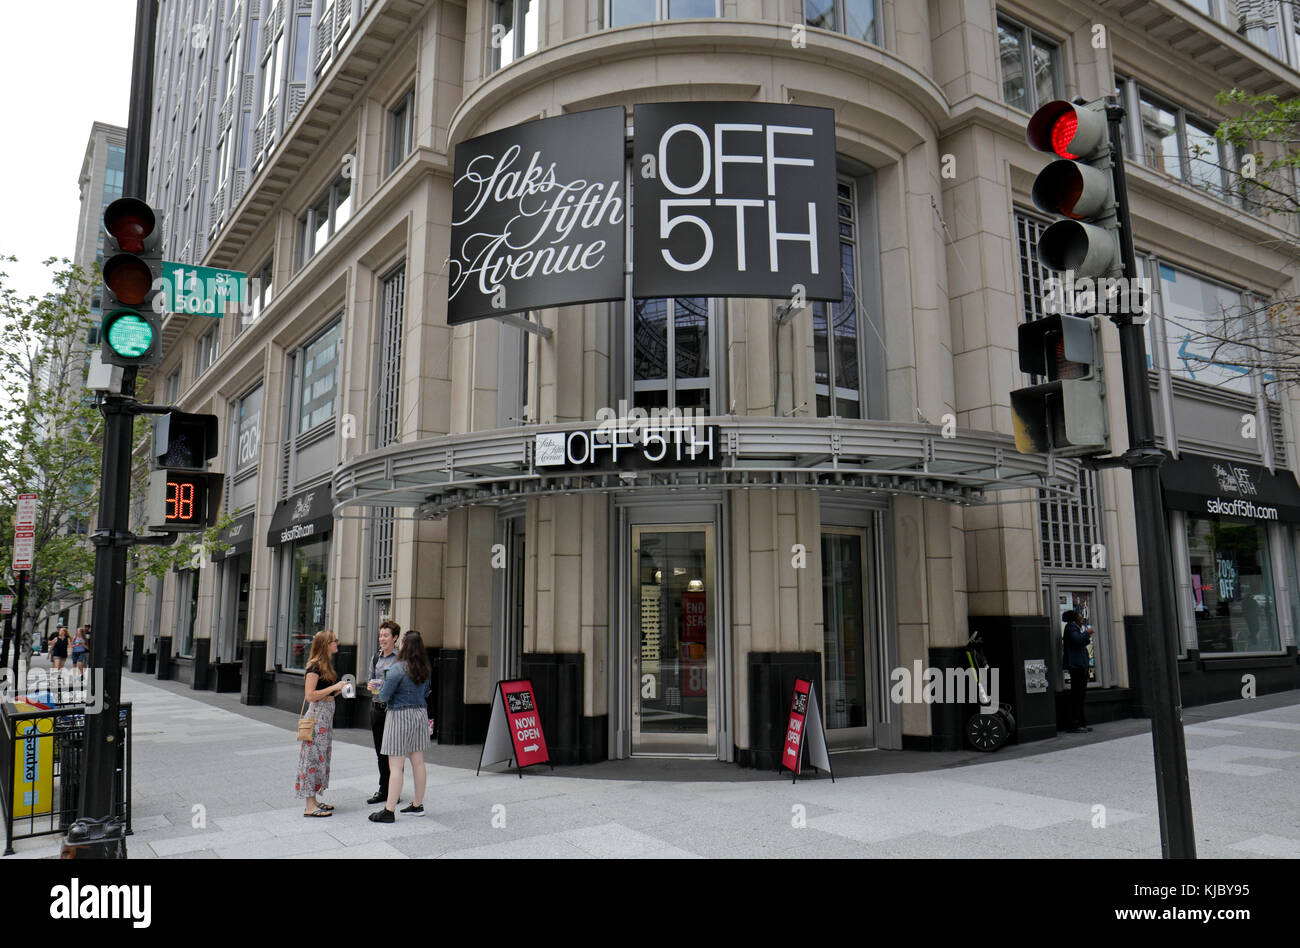 The Saks Fifth Avenue Off 5th retail outlet on 11th St NW in Washington DC, United States. Stock Photo